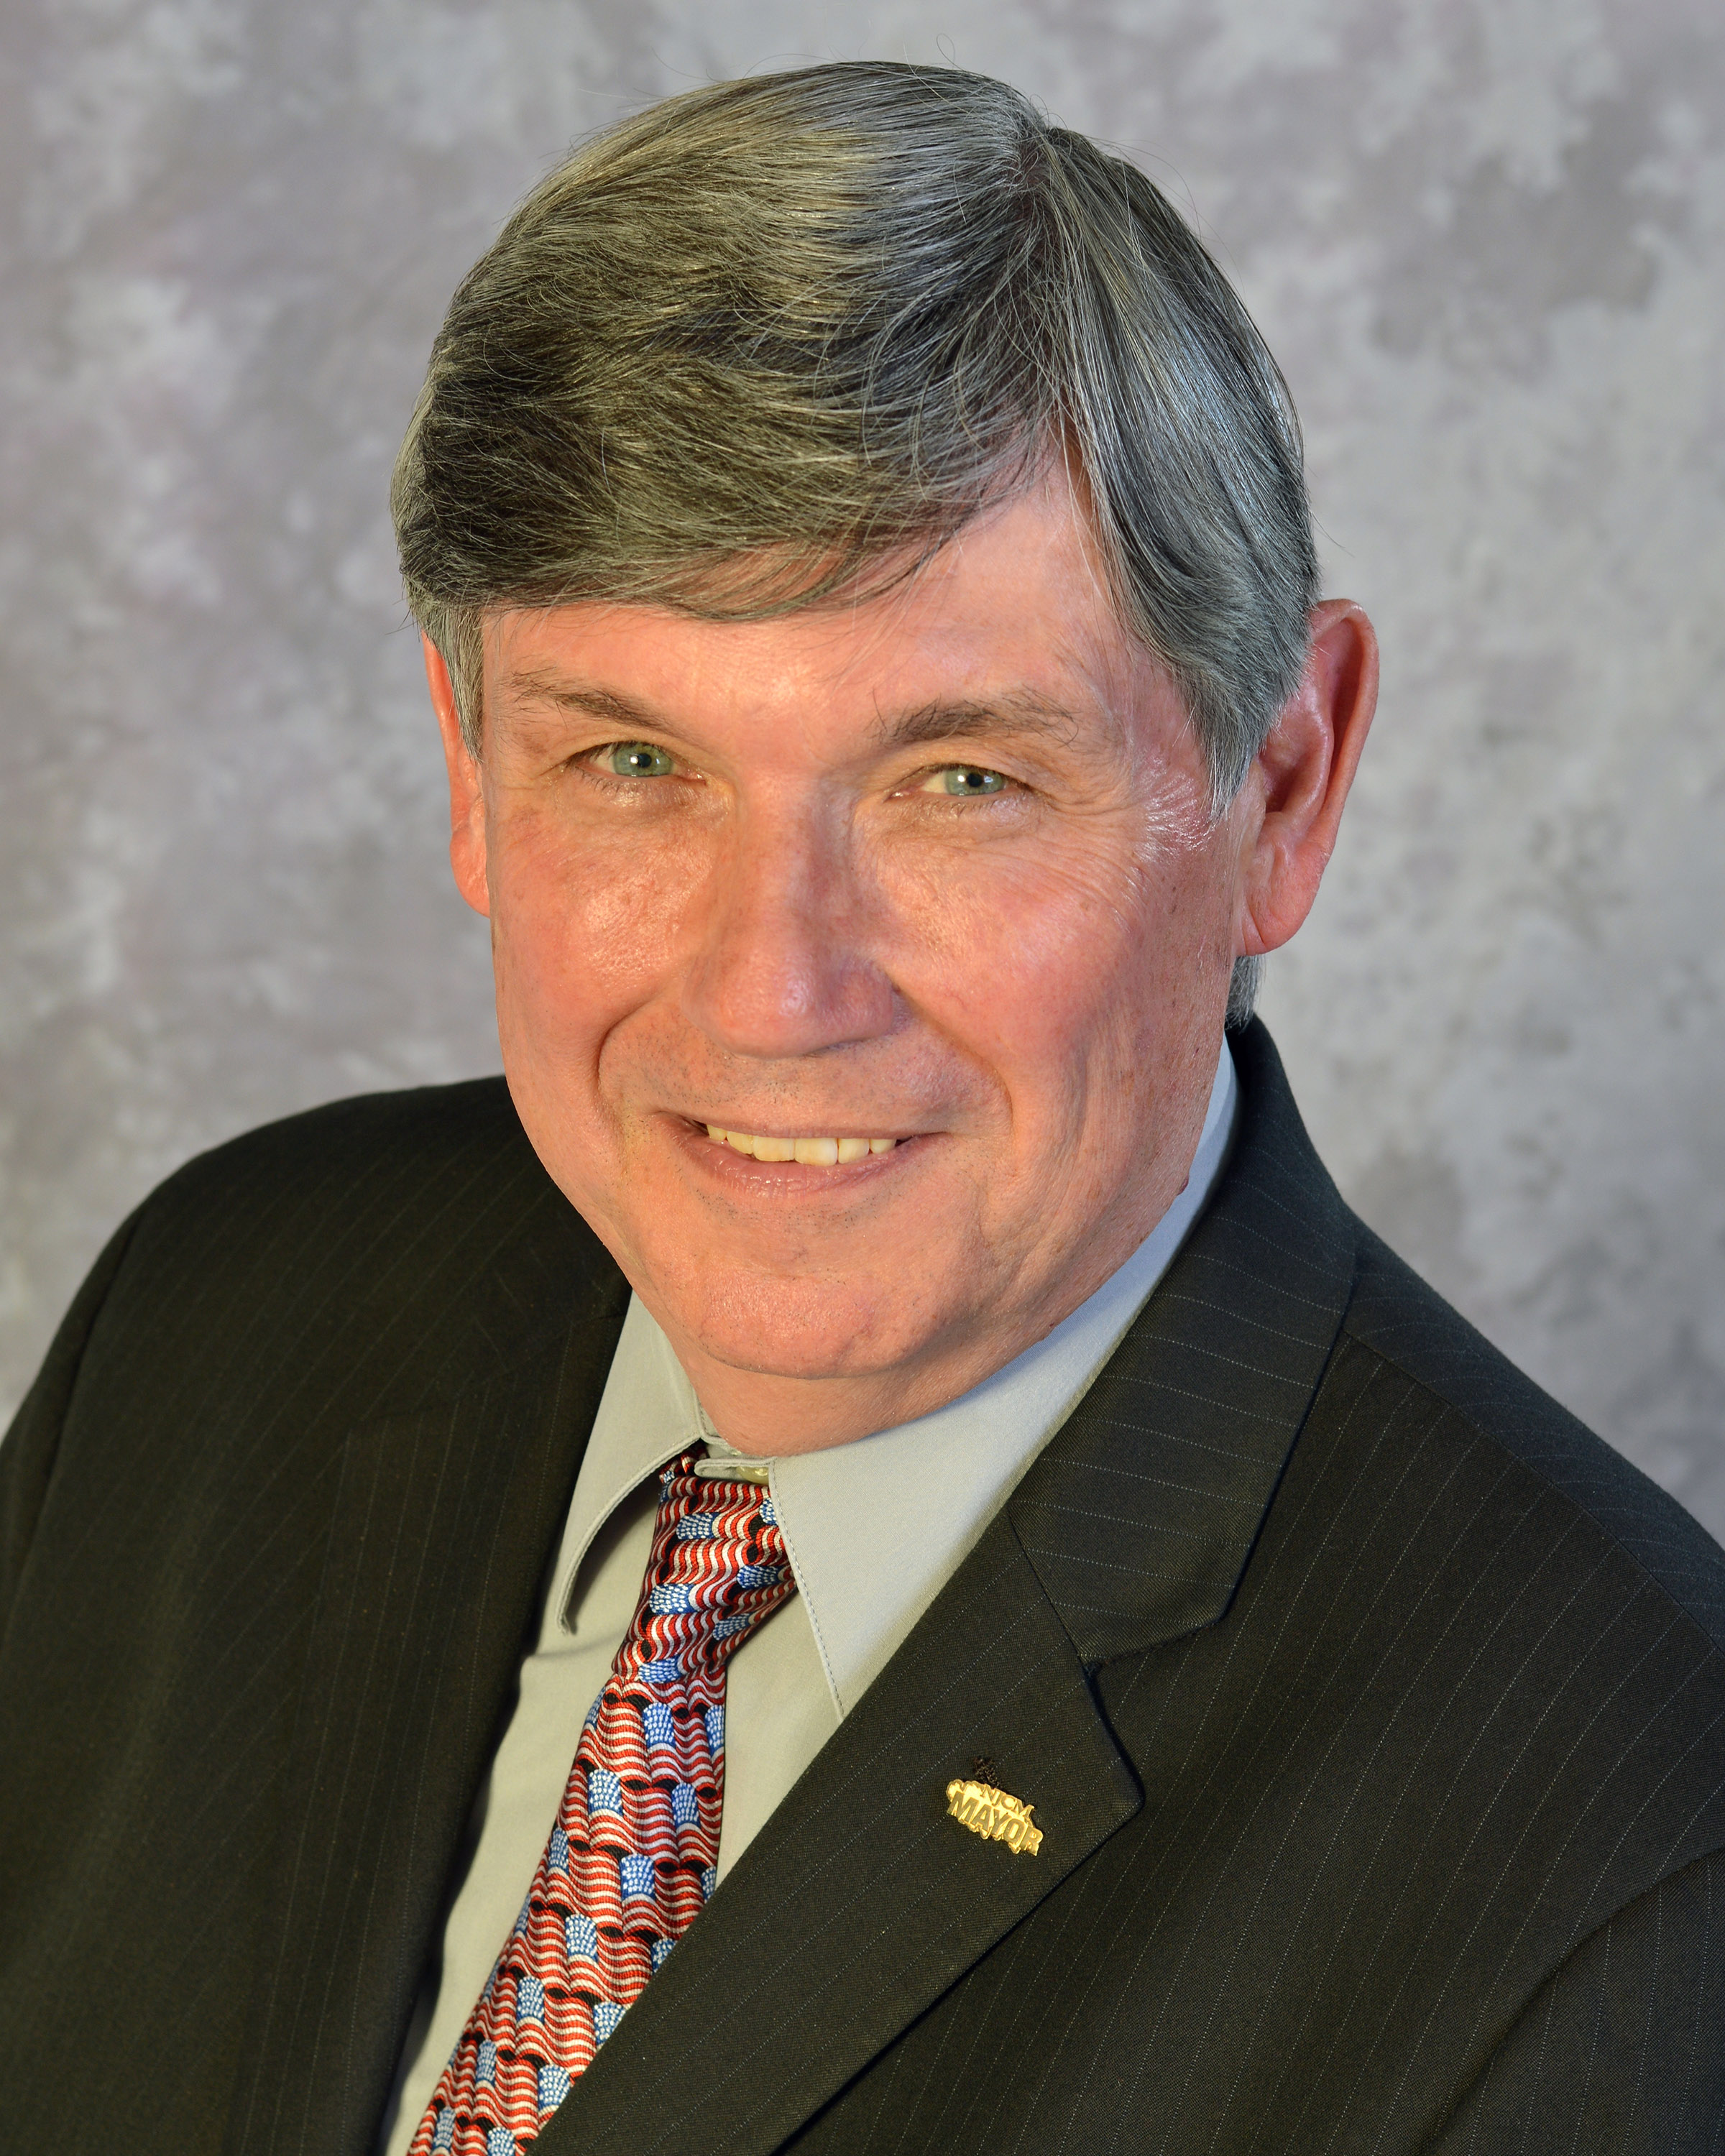 Greenwich Township Mayor George W. Shivery, Jr.